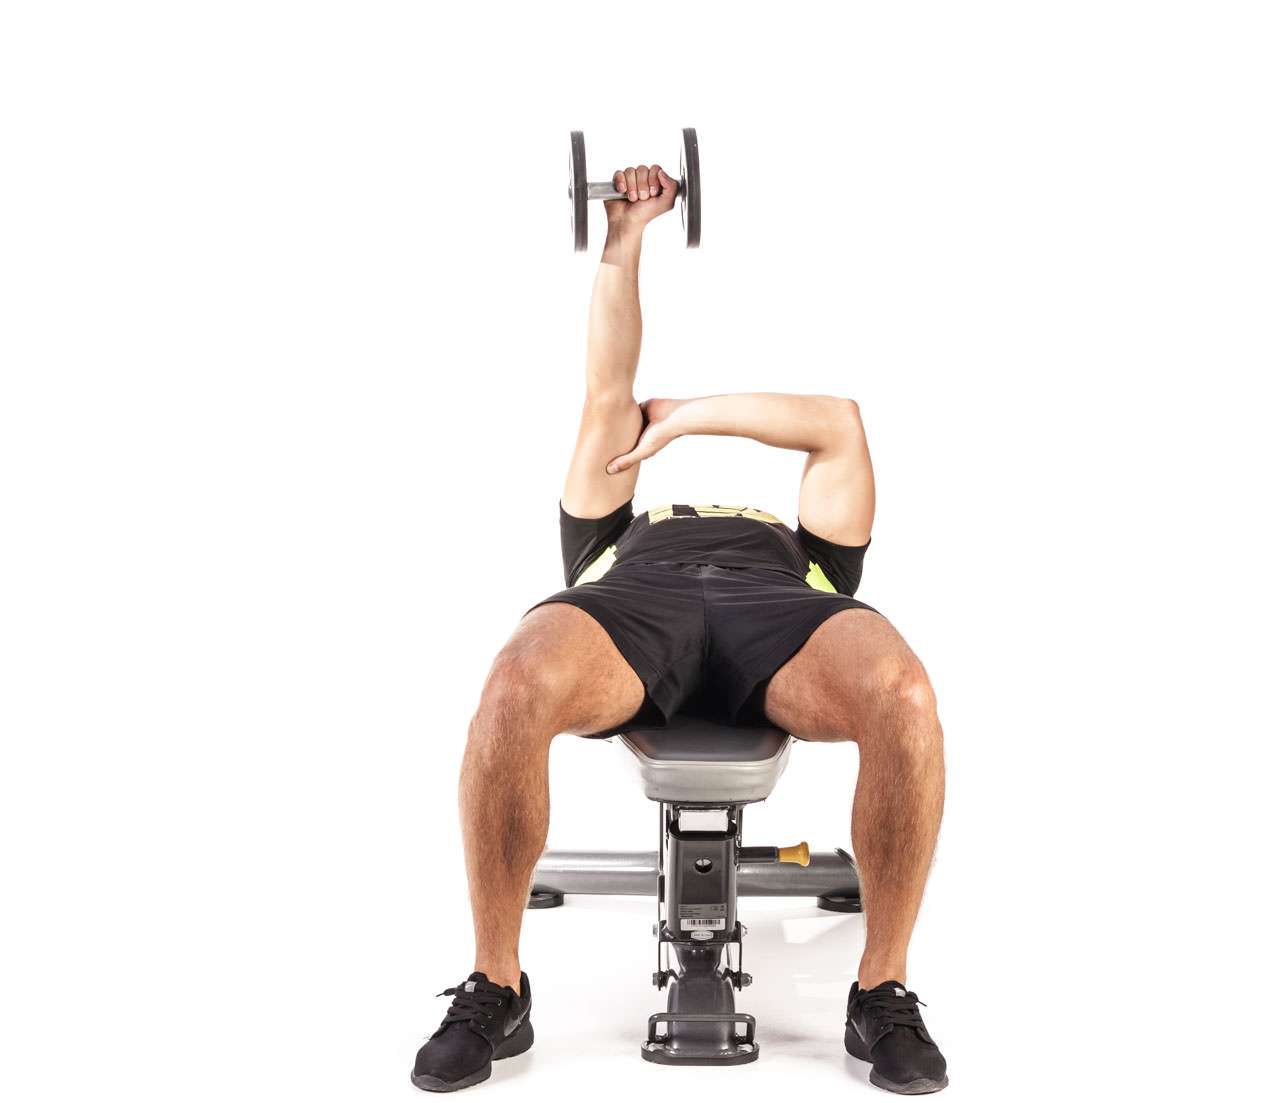 One-Arm Dumbbell Triceps Extension frame #1